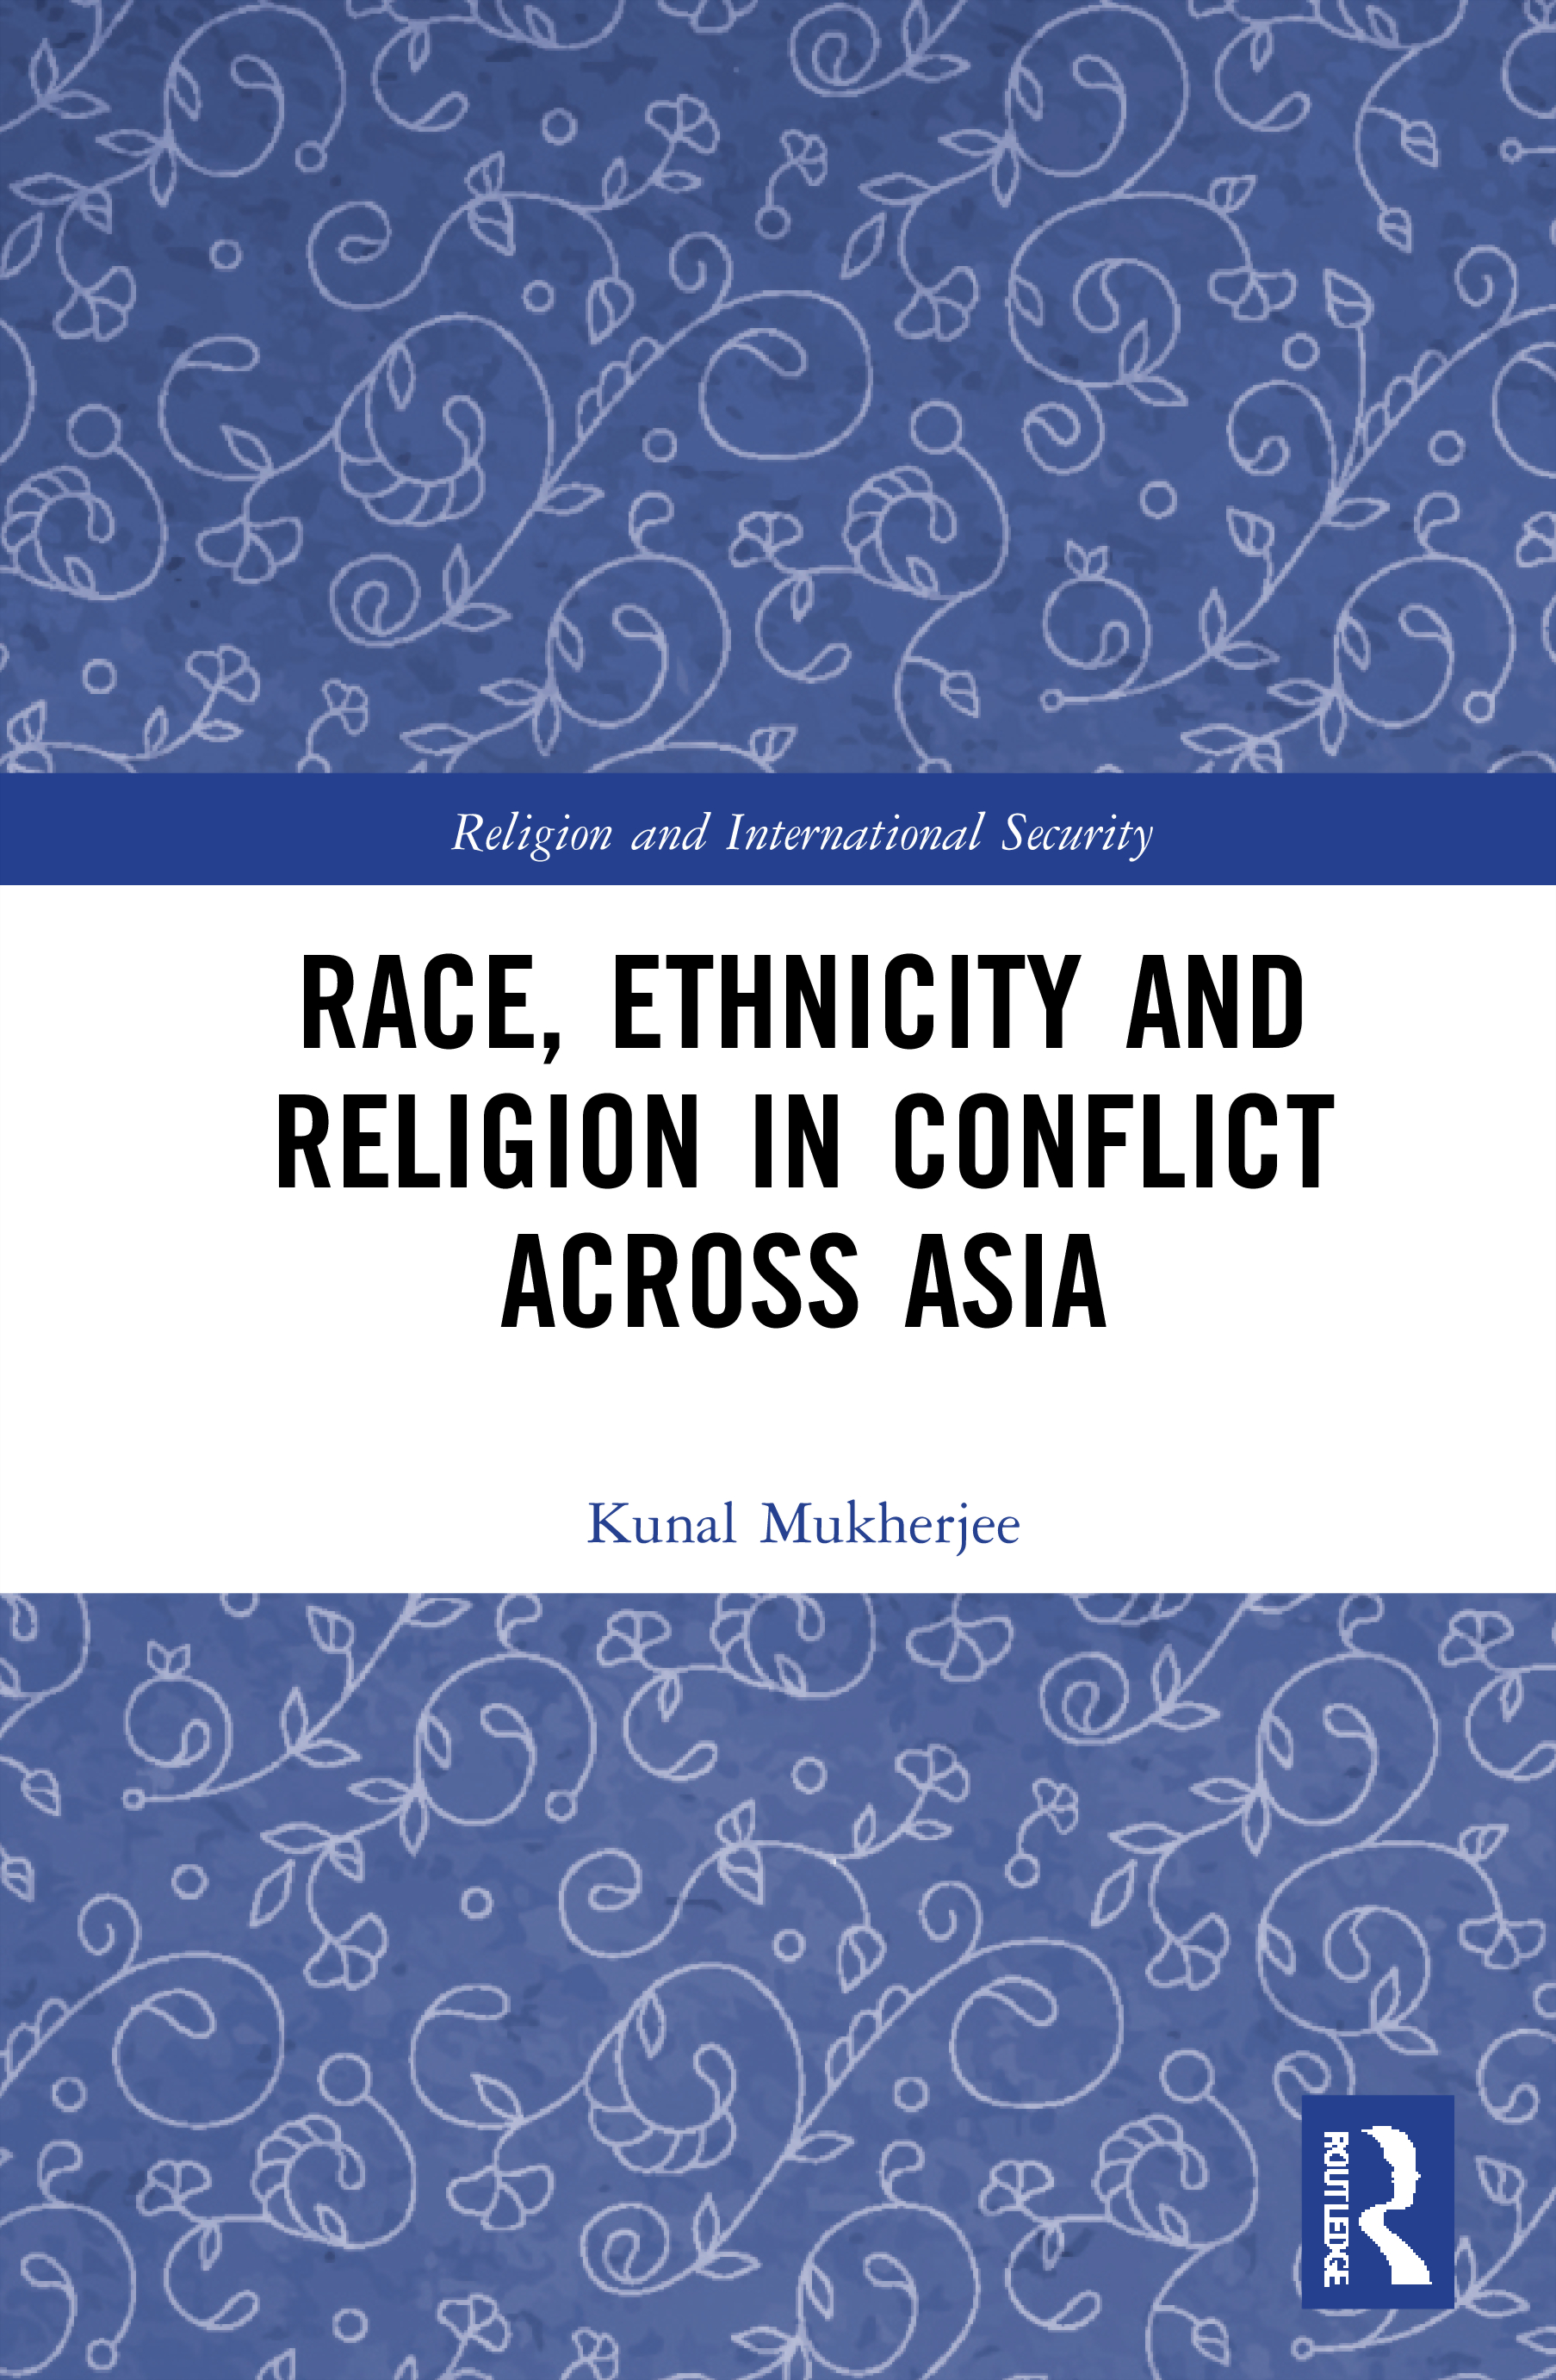 Race, Ethnicity and Religion in Conflict Across Asia